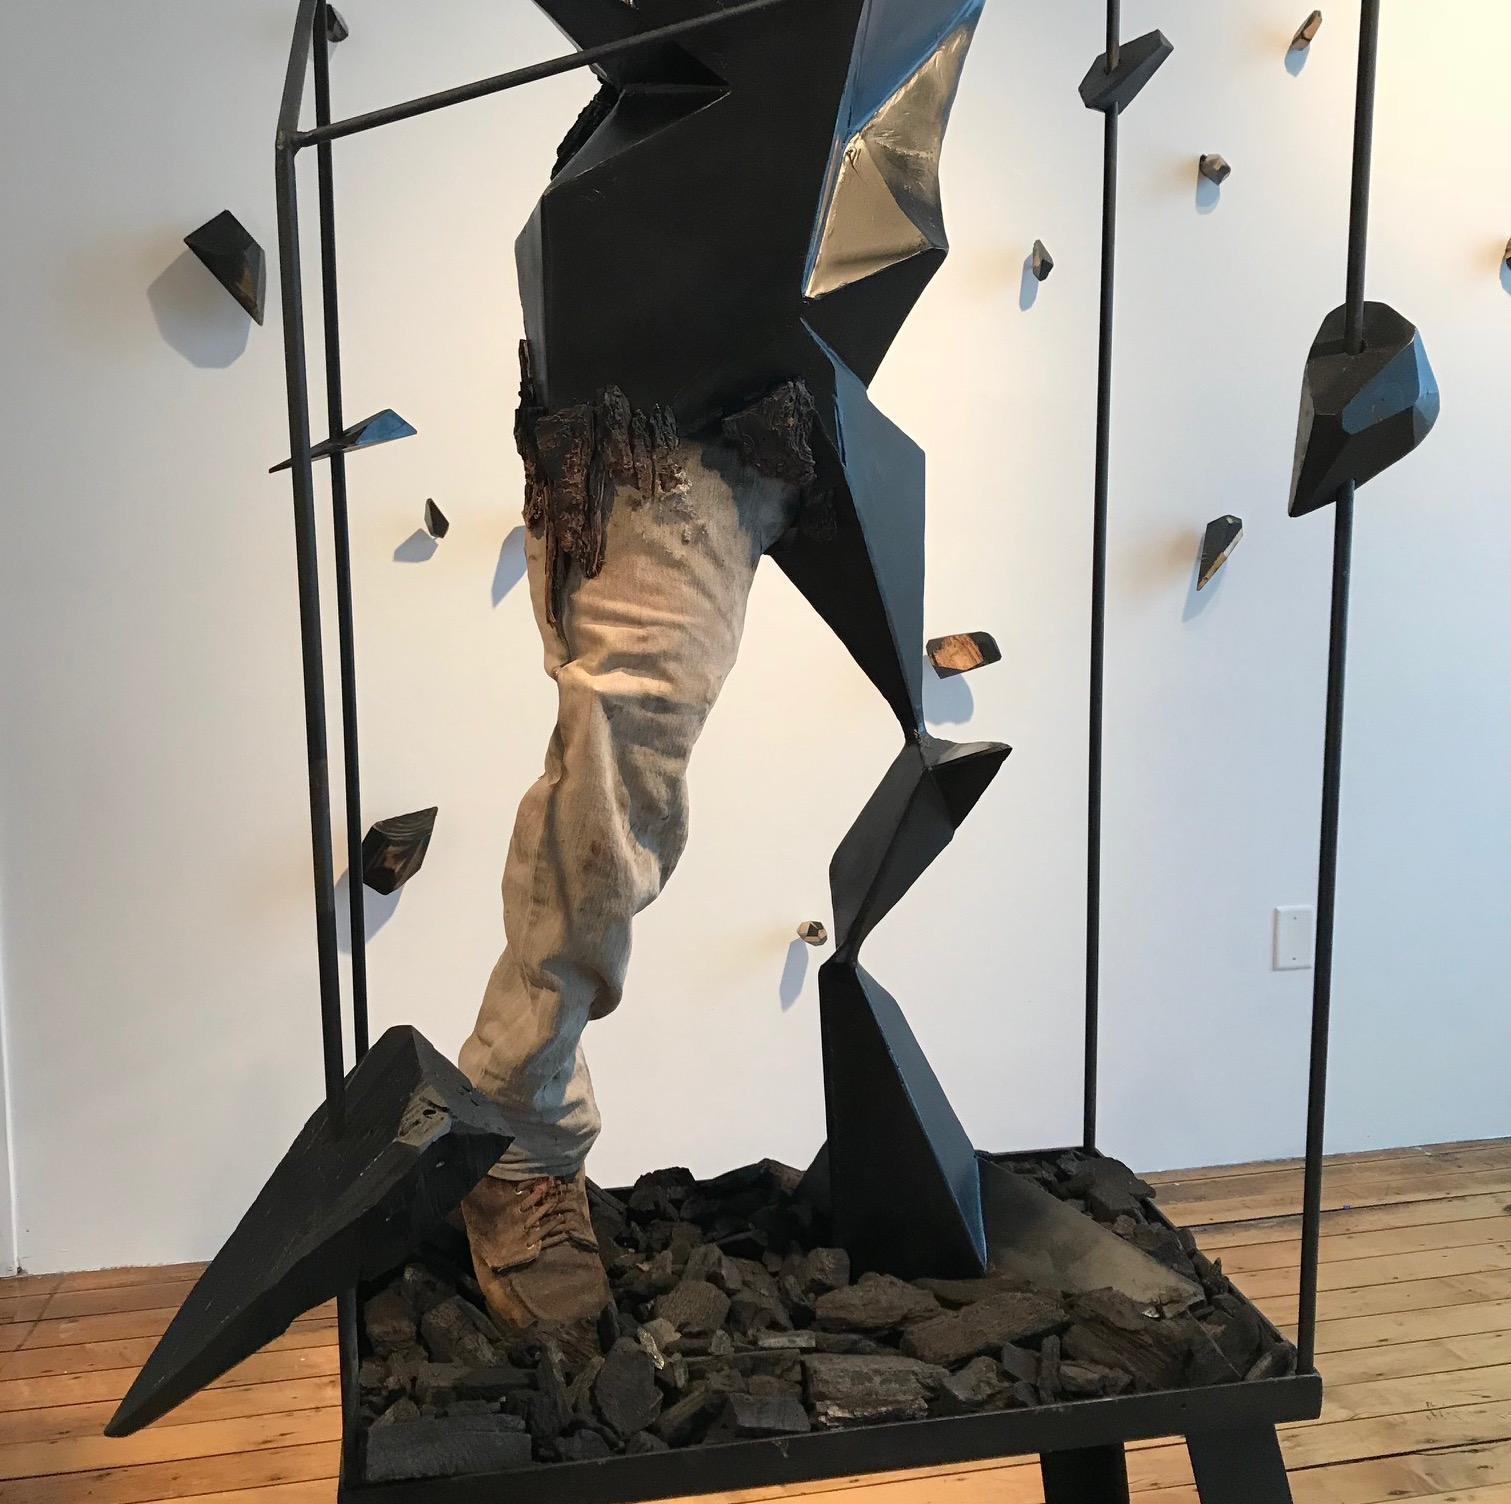 Carey Morton,  Transfiguration  (detail), 2018, steel, wood, charcoal, dimensions vary